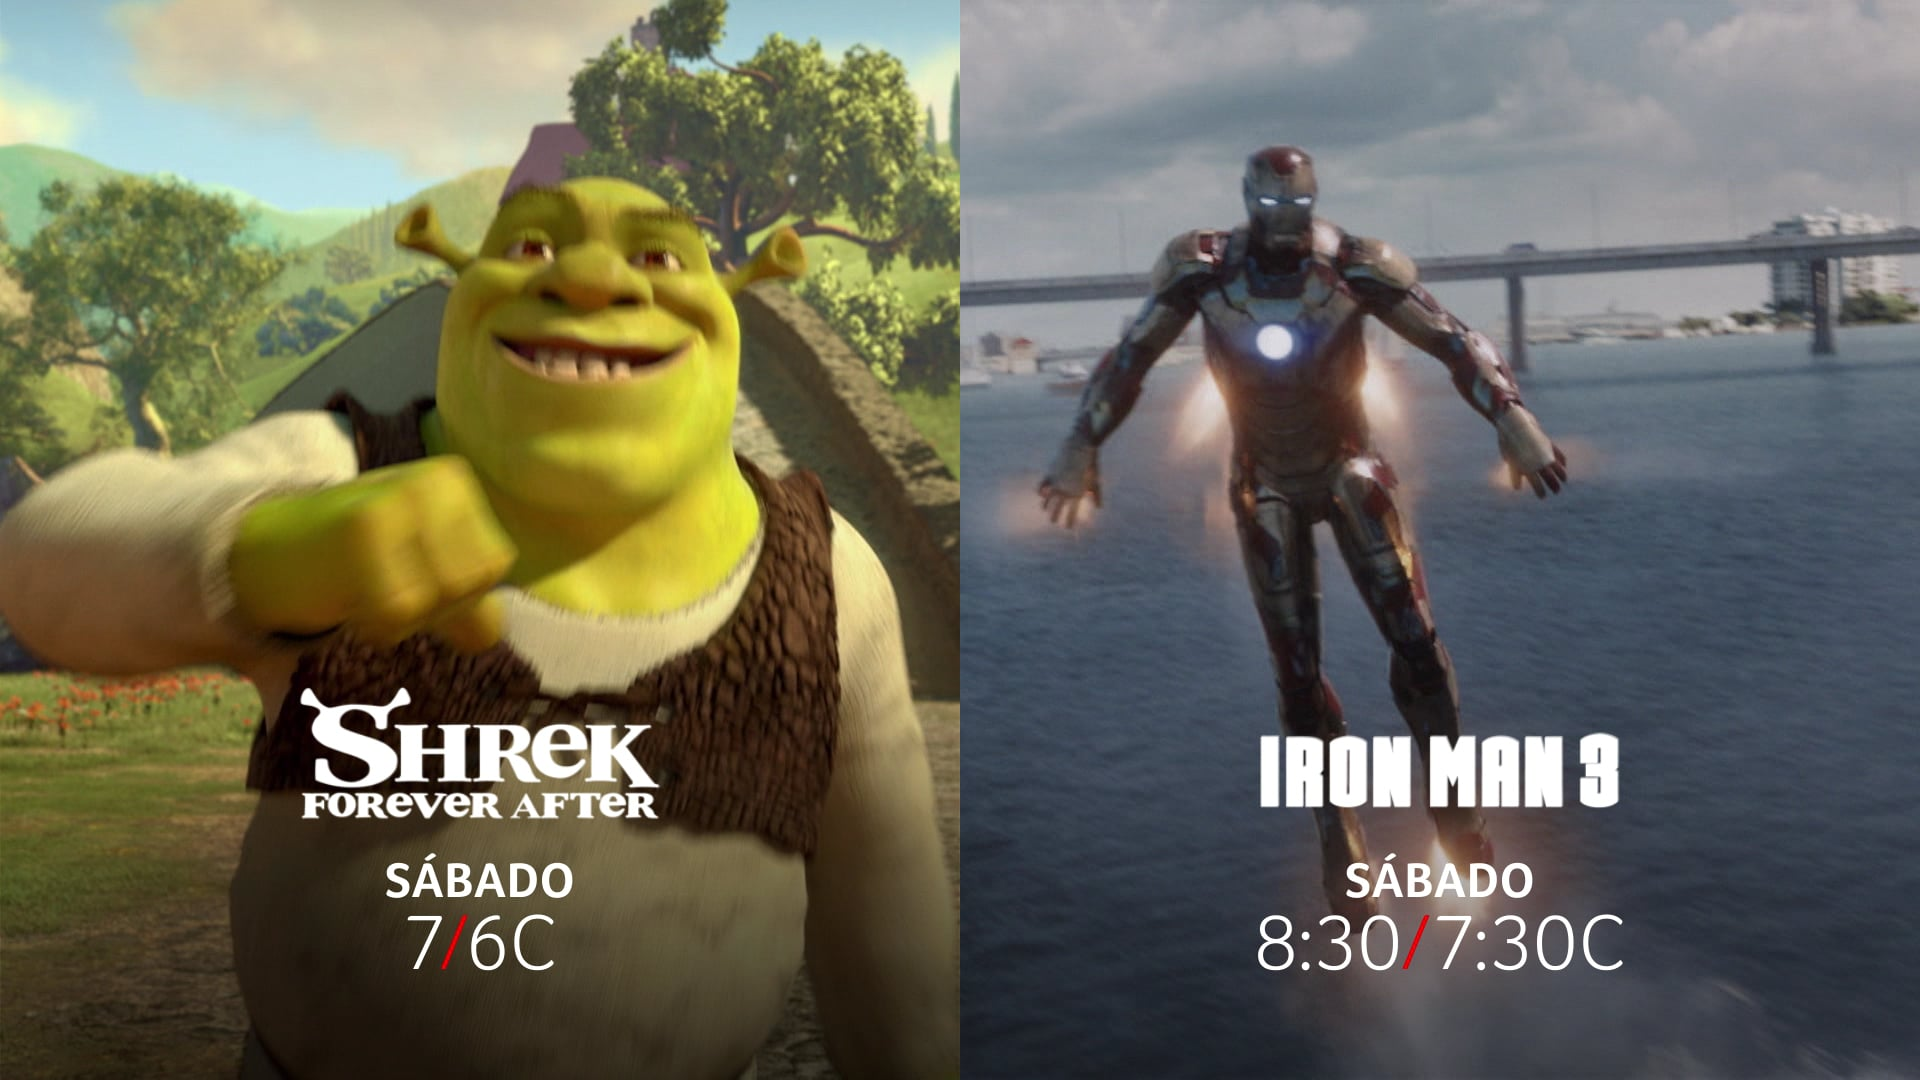 SHREK FOREVER AFTER + IRON MAN 3